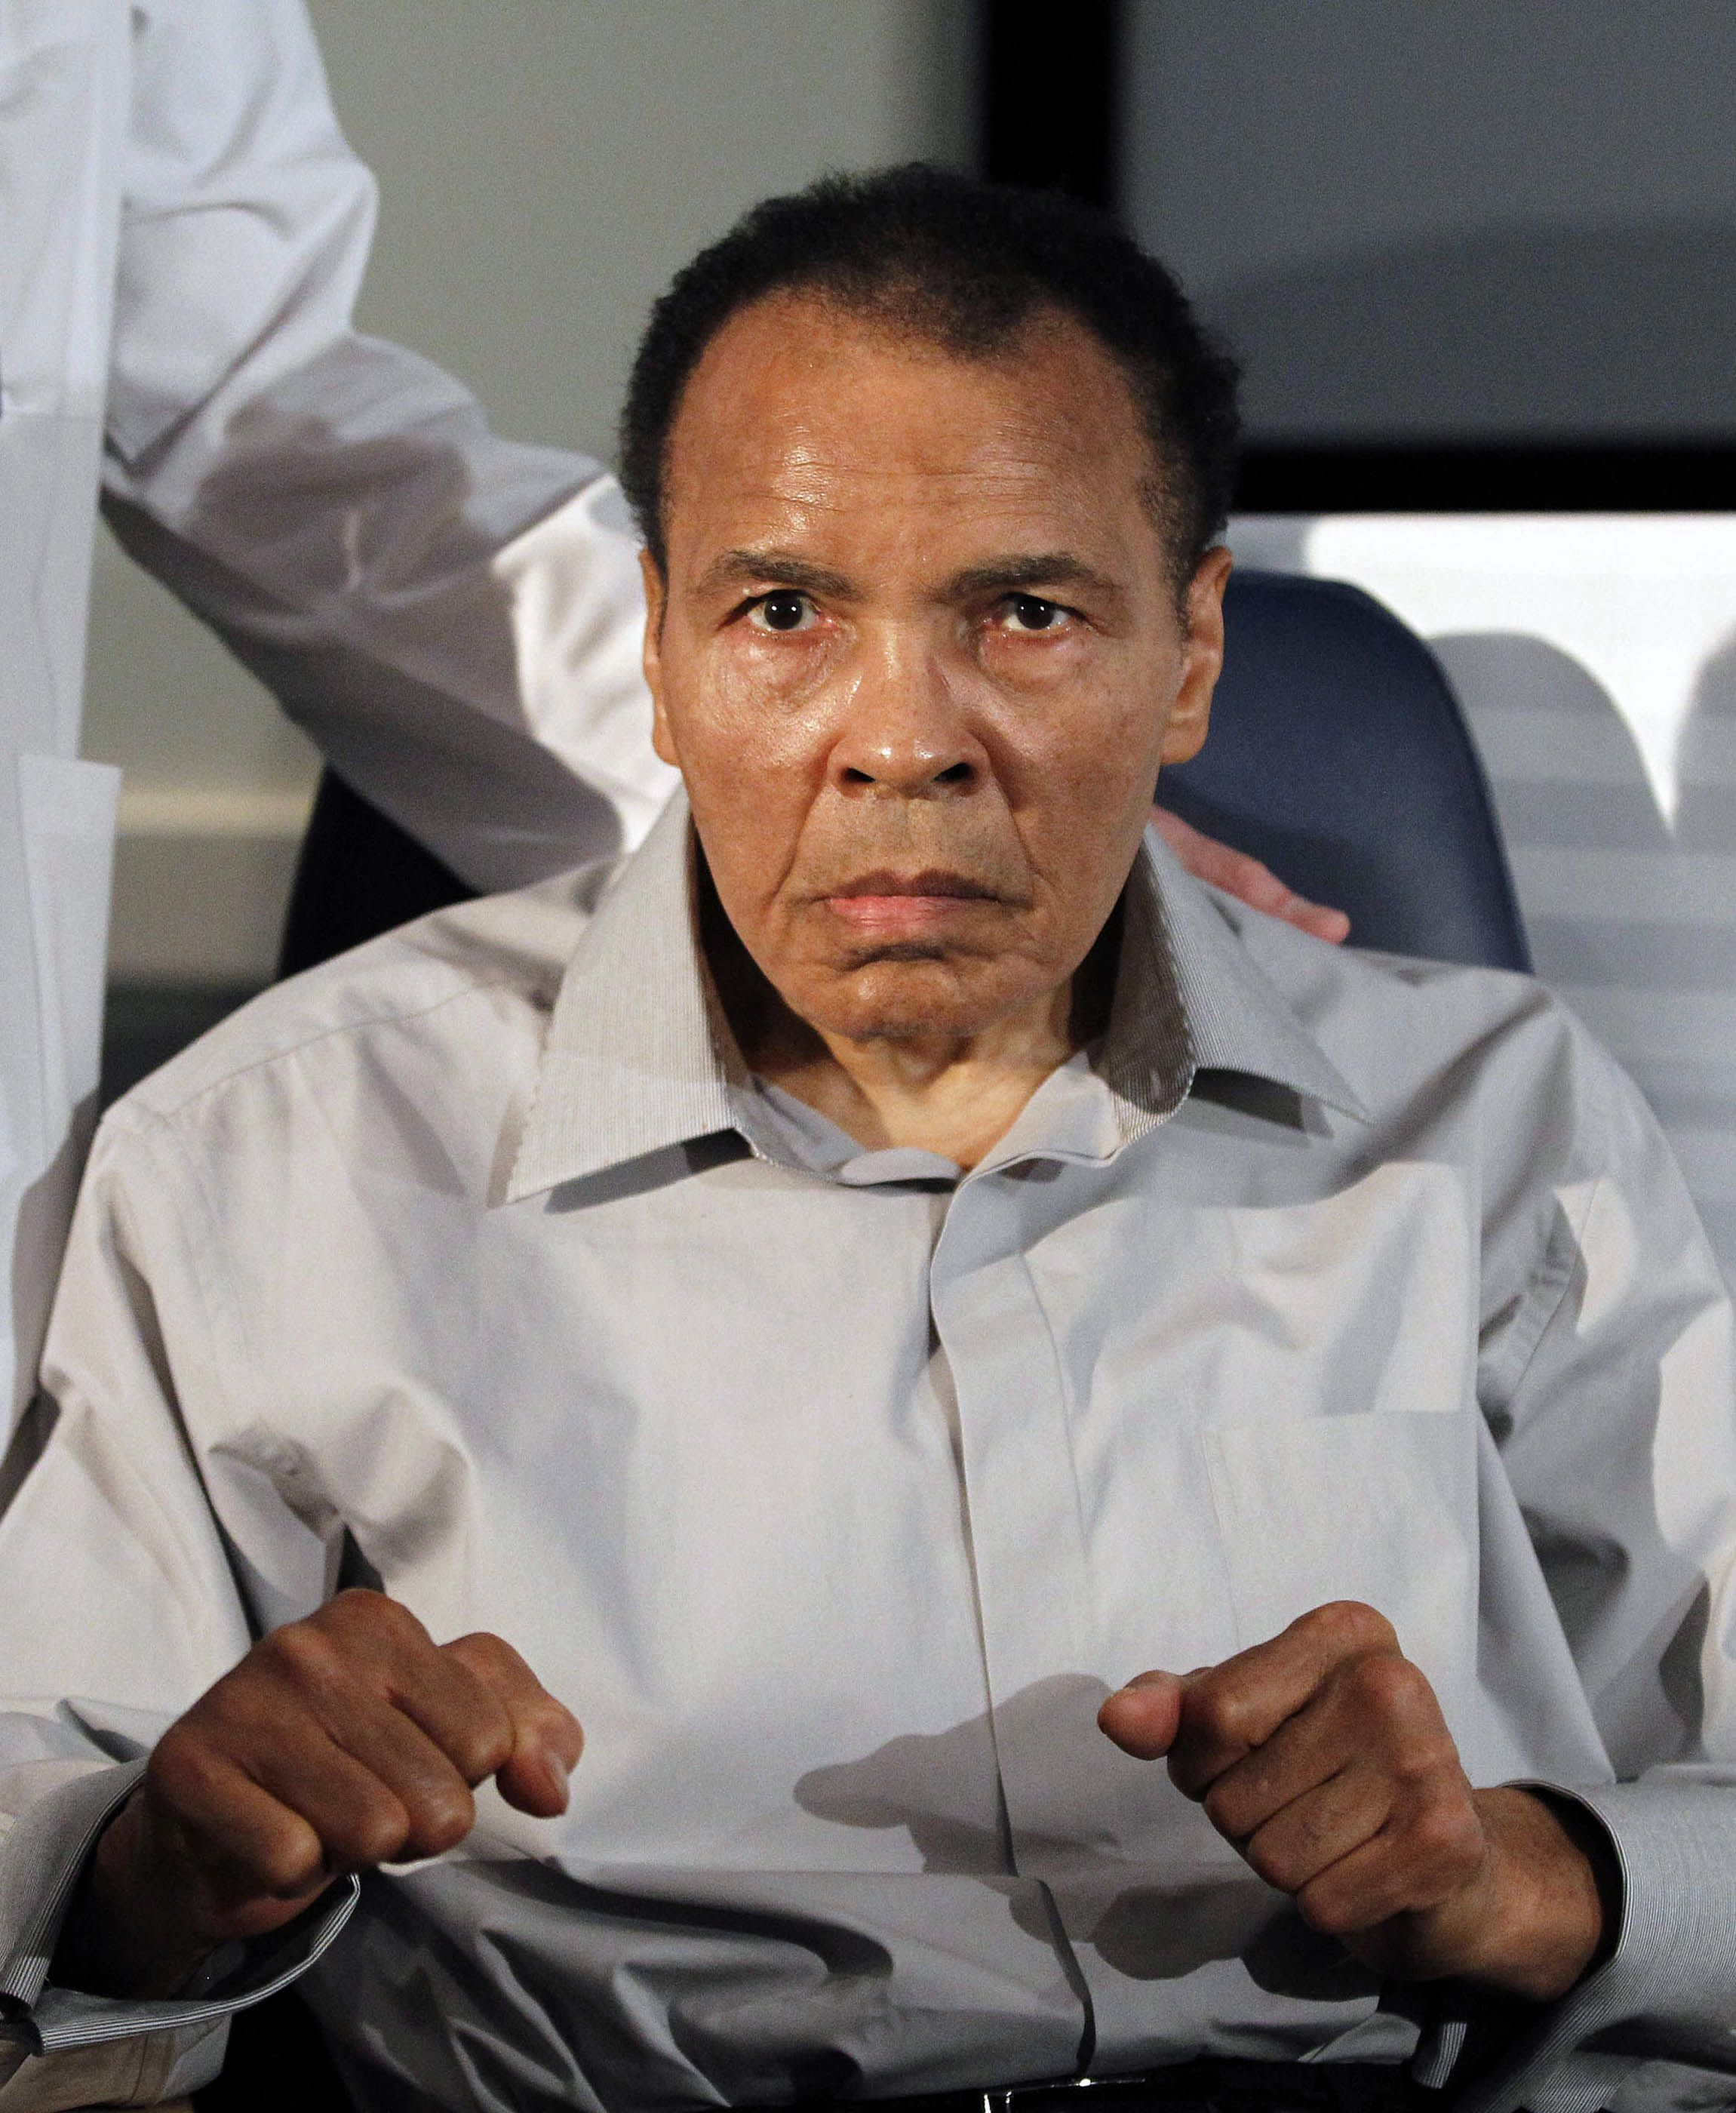 http://media.washtimes.com/media/image/2012/09/13/people-muhammad-ali_lea.jpg